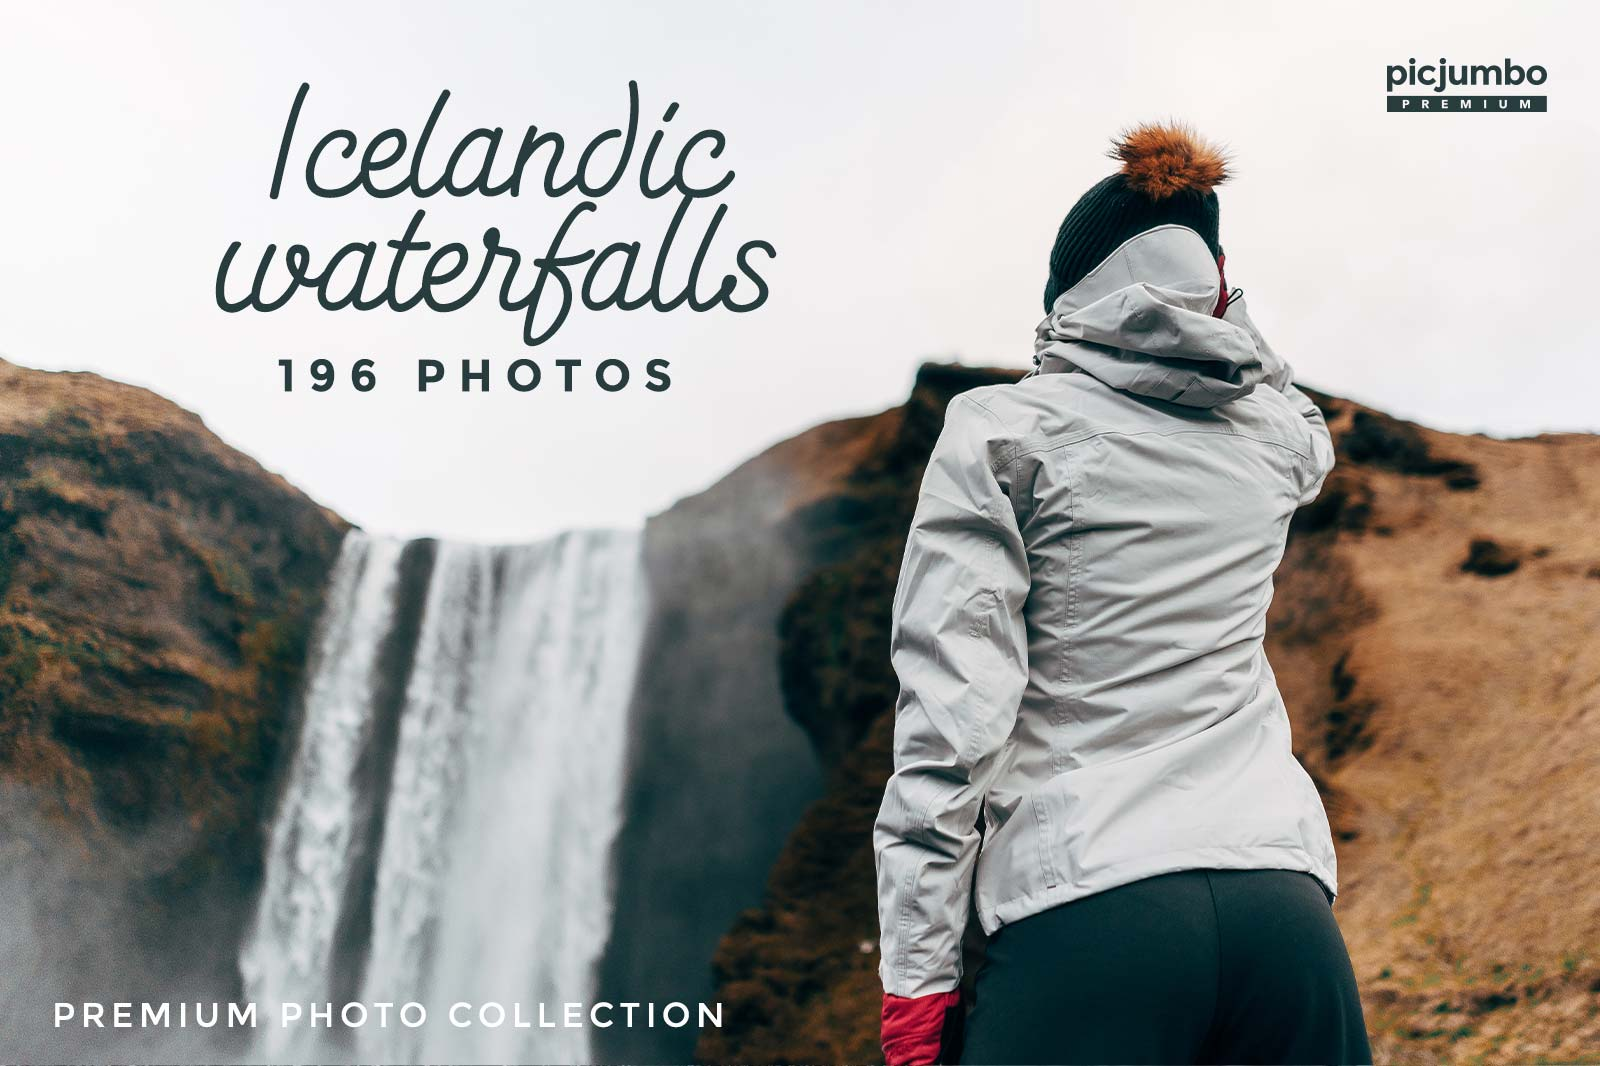 icelandic-waterfalls-stock-photos-picjum